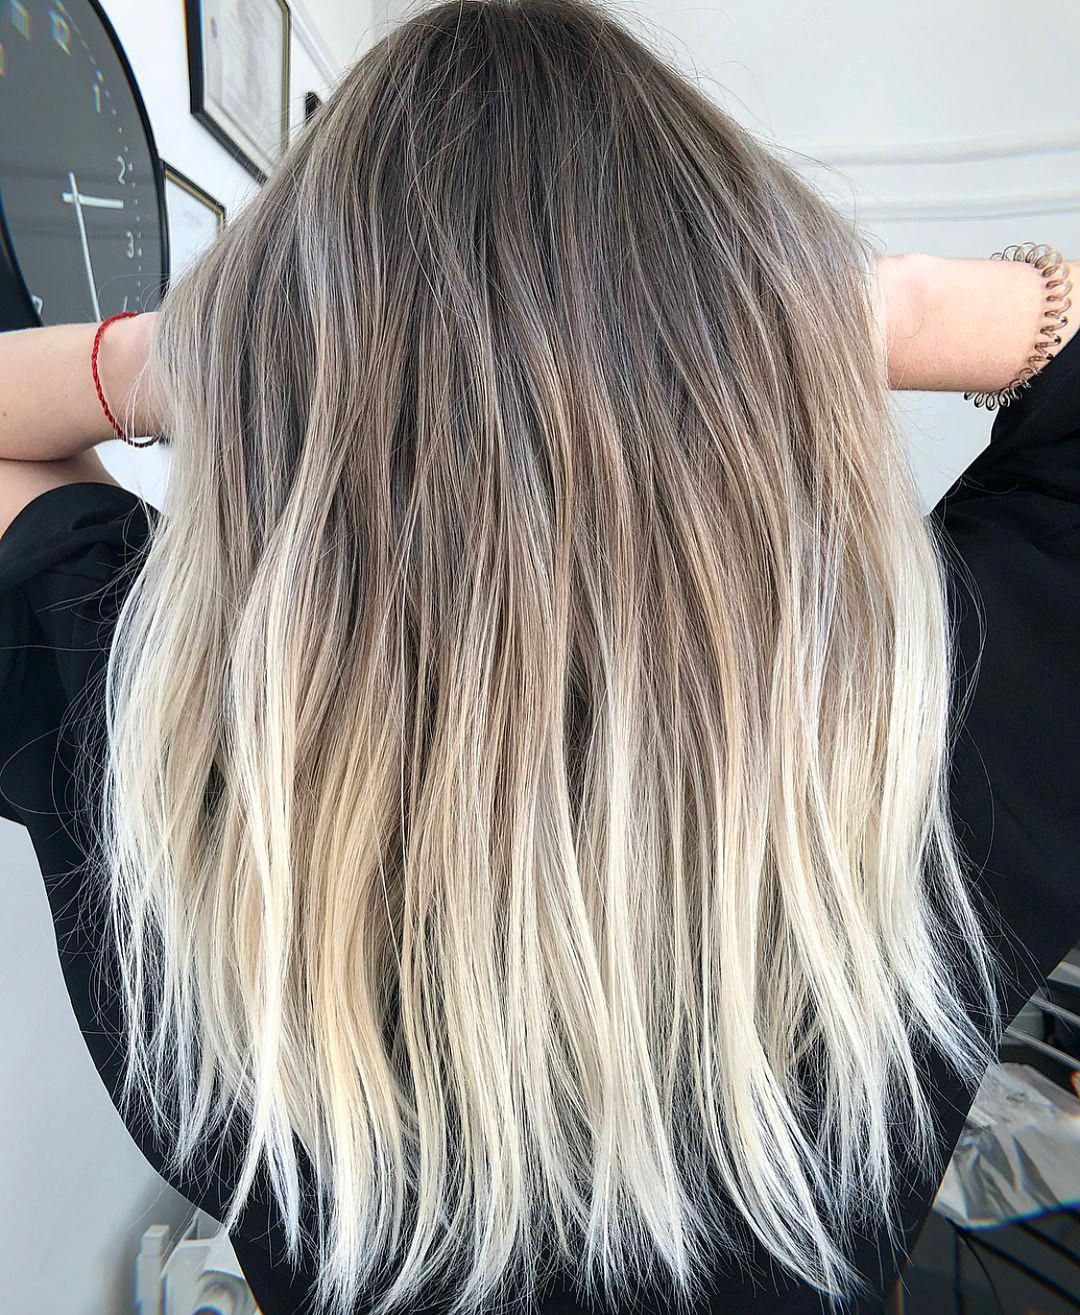 Short Haircuts For Women Straight Hair Back Short And Straight Hairstyles 20190227 Balayage Hair Ombre Hair Blonde Balayage Hair Blonde Medium